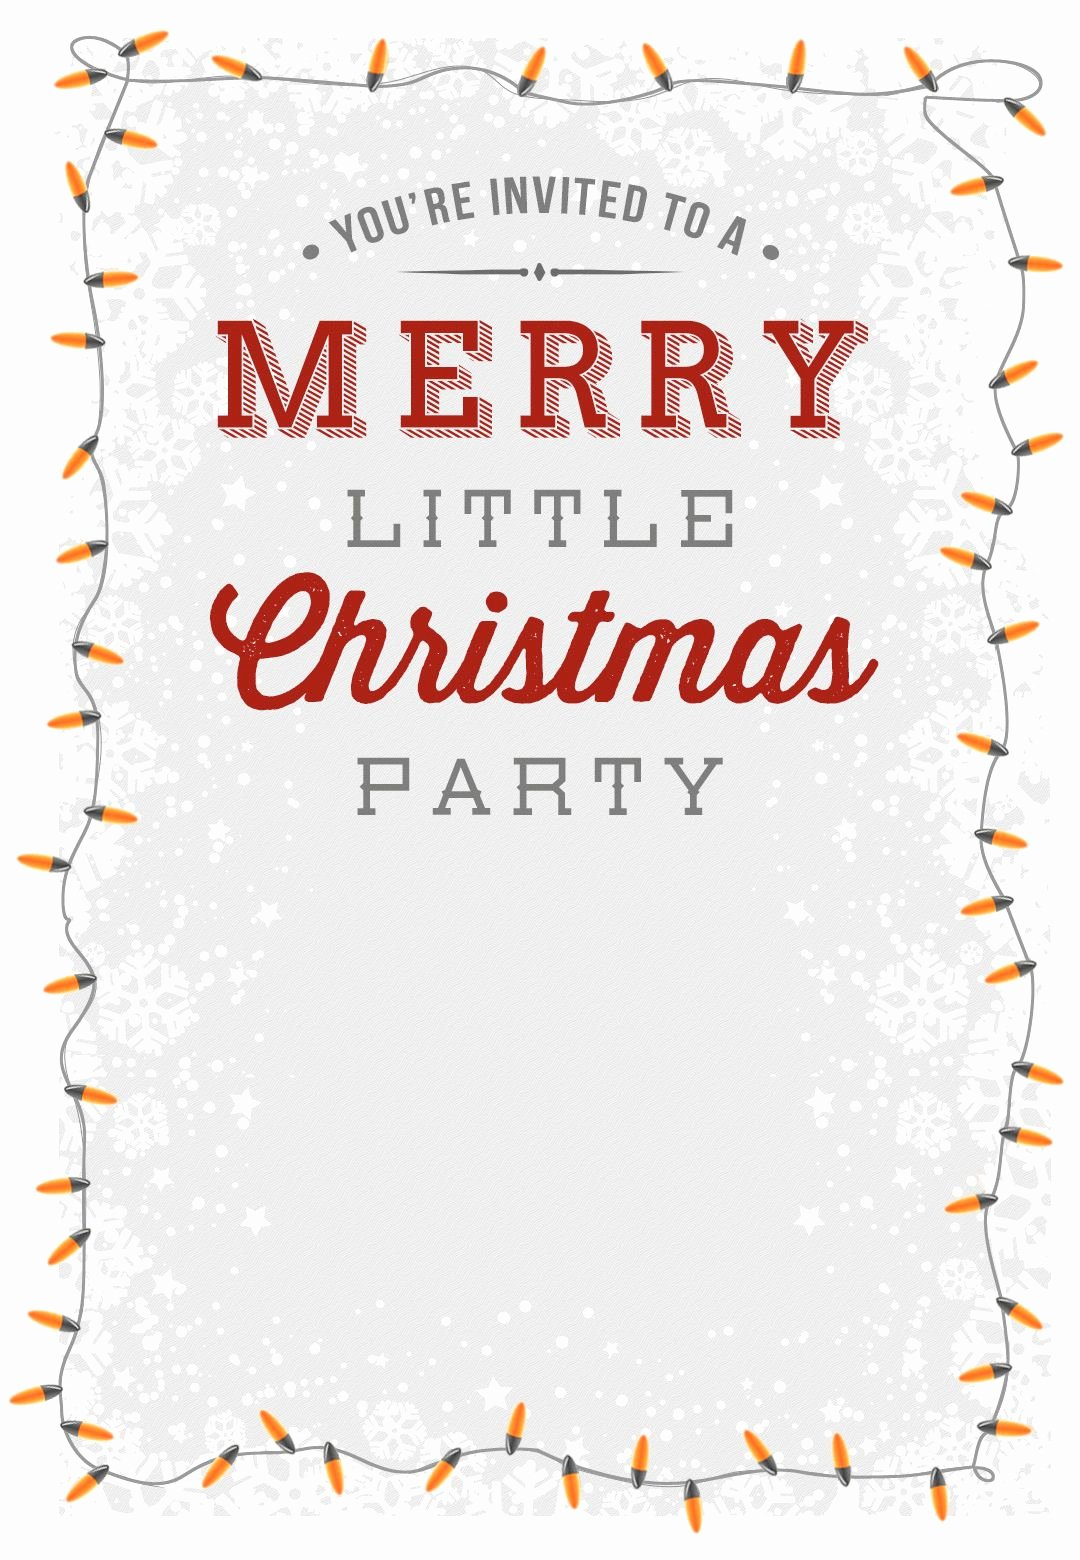 Free Printable Invitations Templates Elegant A Merry Little Party Free Printable Christmas Invitation